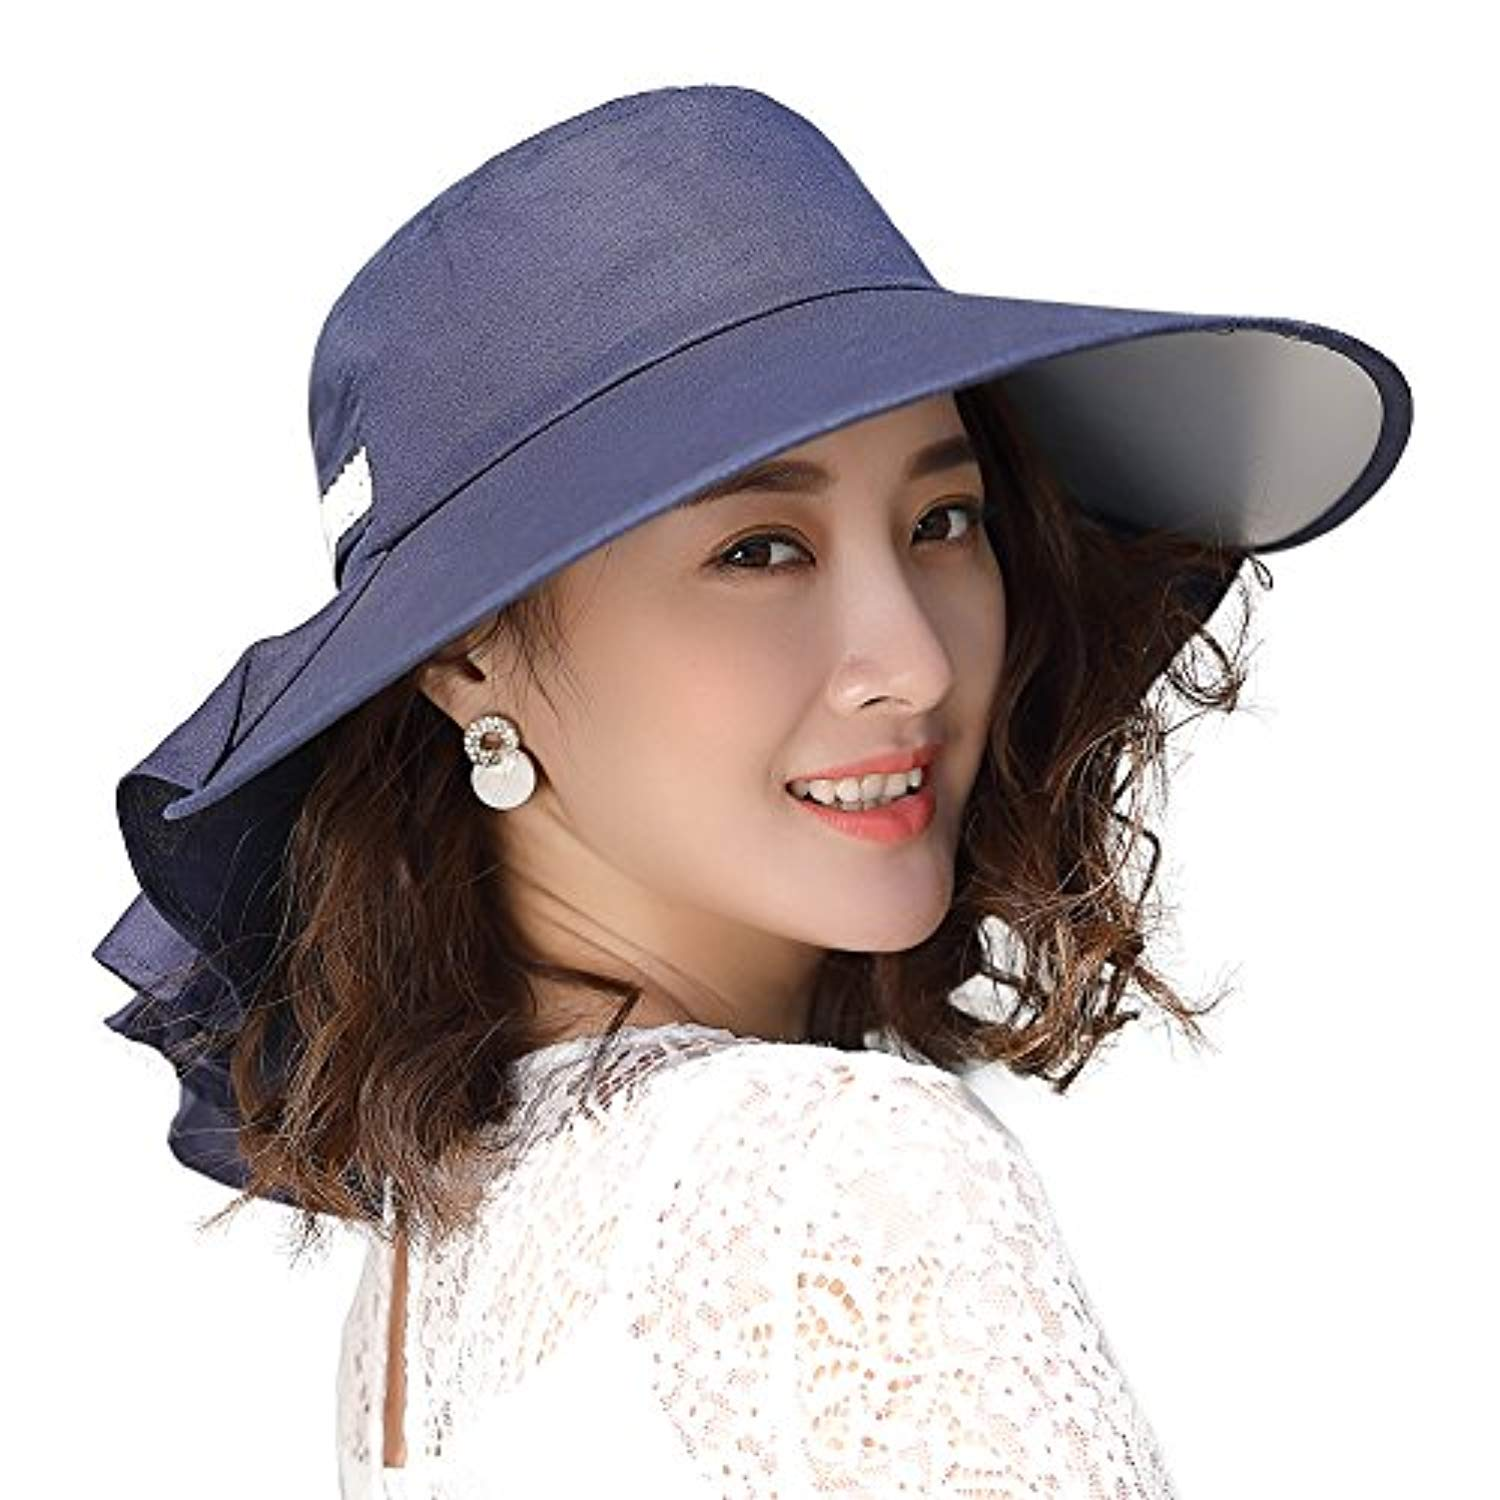 225be8e4a1d Protection Sun Hats Packable Summer Hat Women w/Ponytail Chin Strap 55-61CM